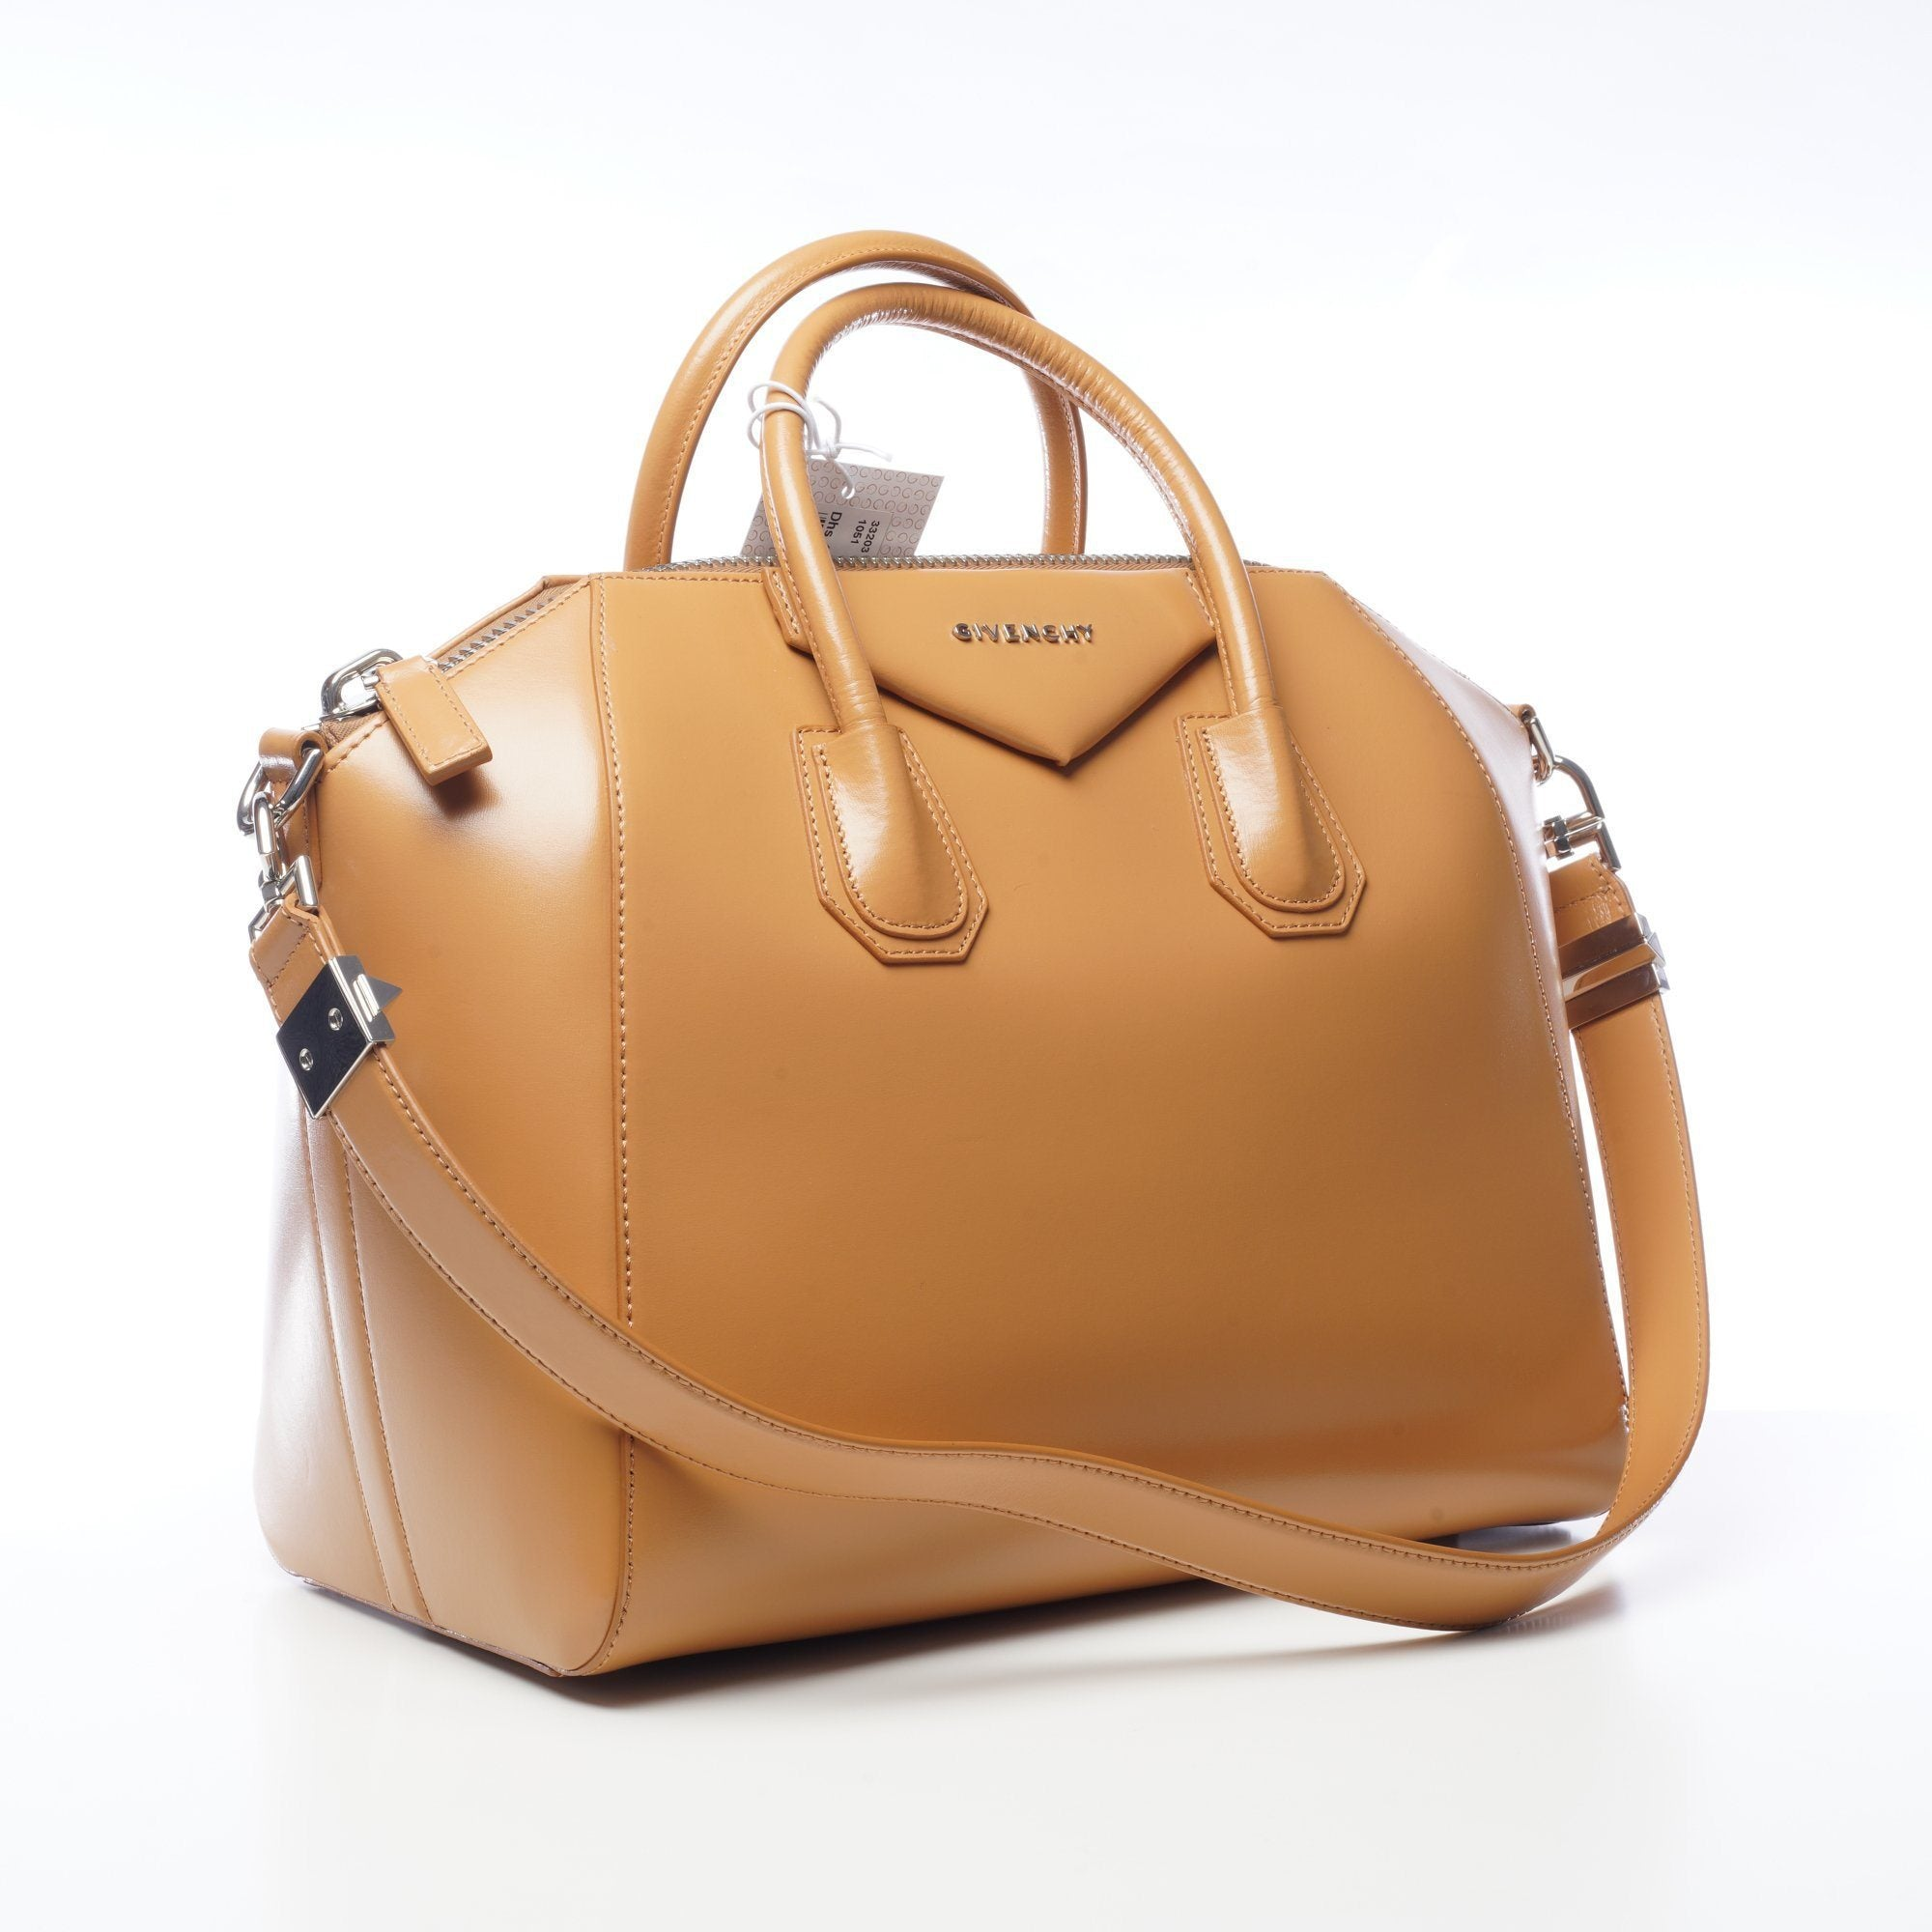 Givenchy Tan Leather Medium Antigona Satchel